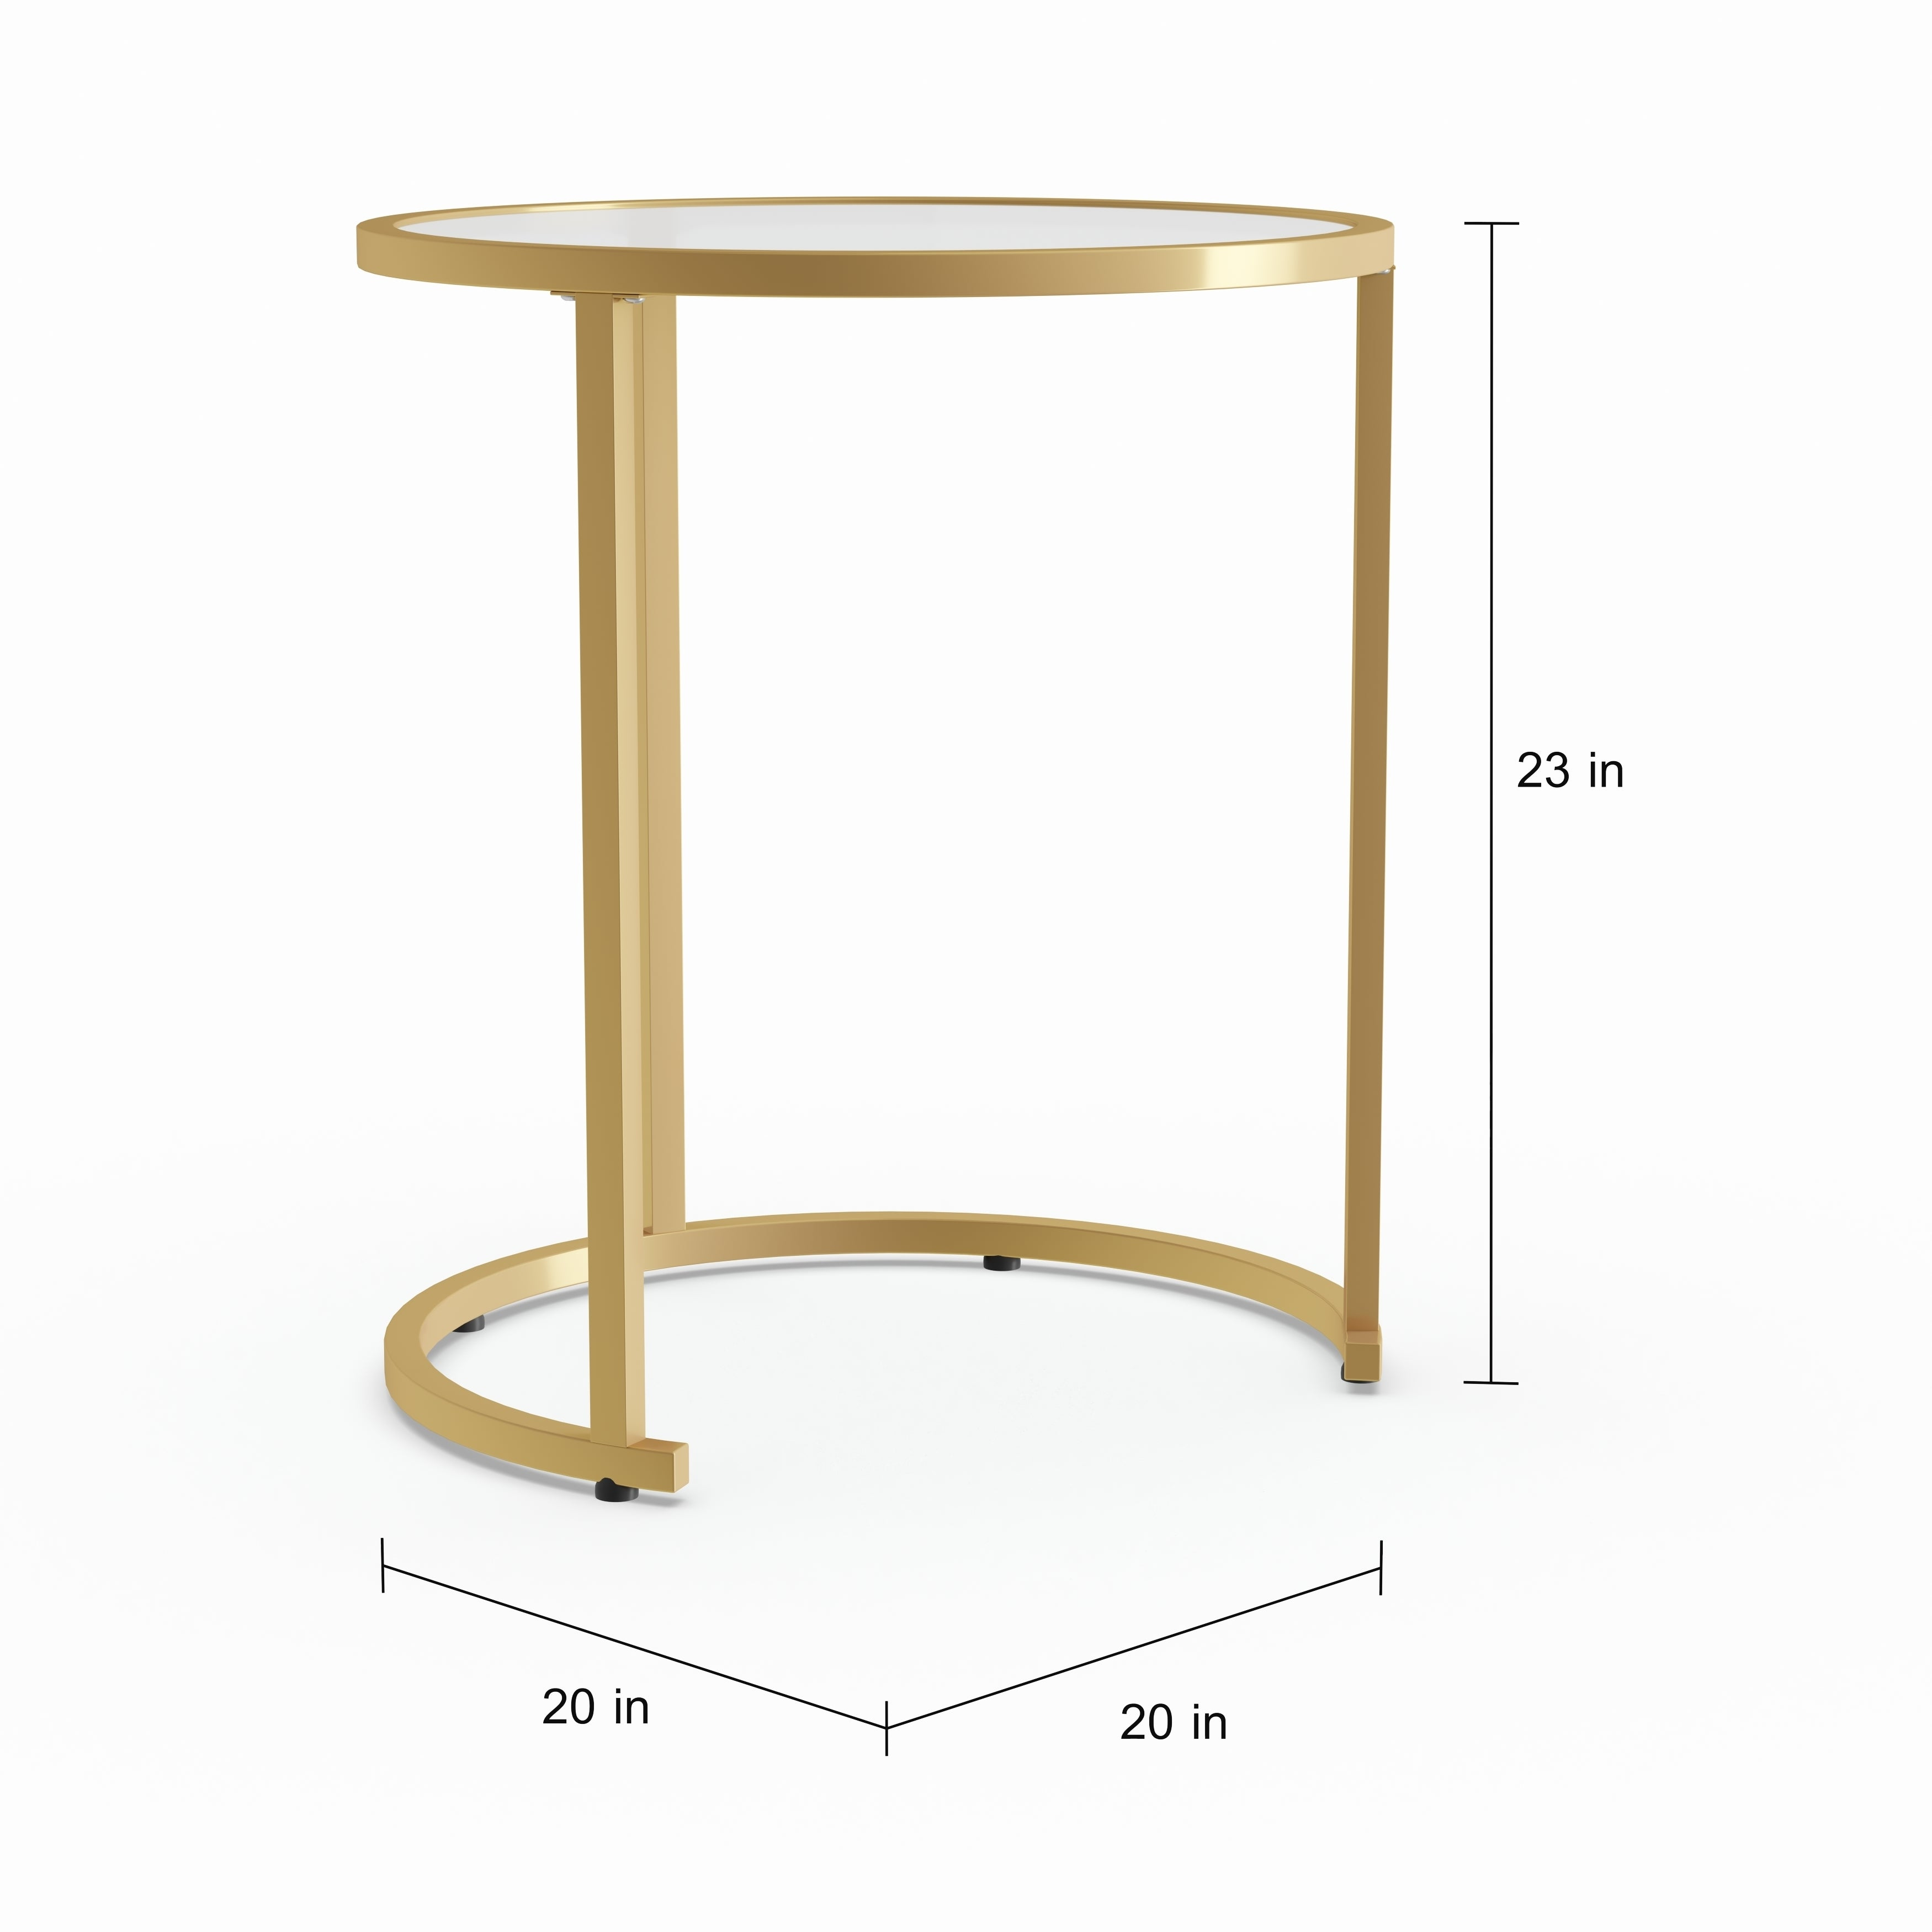 cb943edf38abc Shop Silver Orchid Grant Glam Nesting Side Table 2pc Set - Gold - Free  Shipping Today - Overstock - 22695135